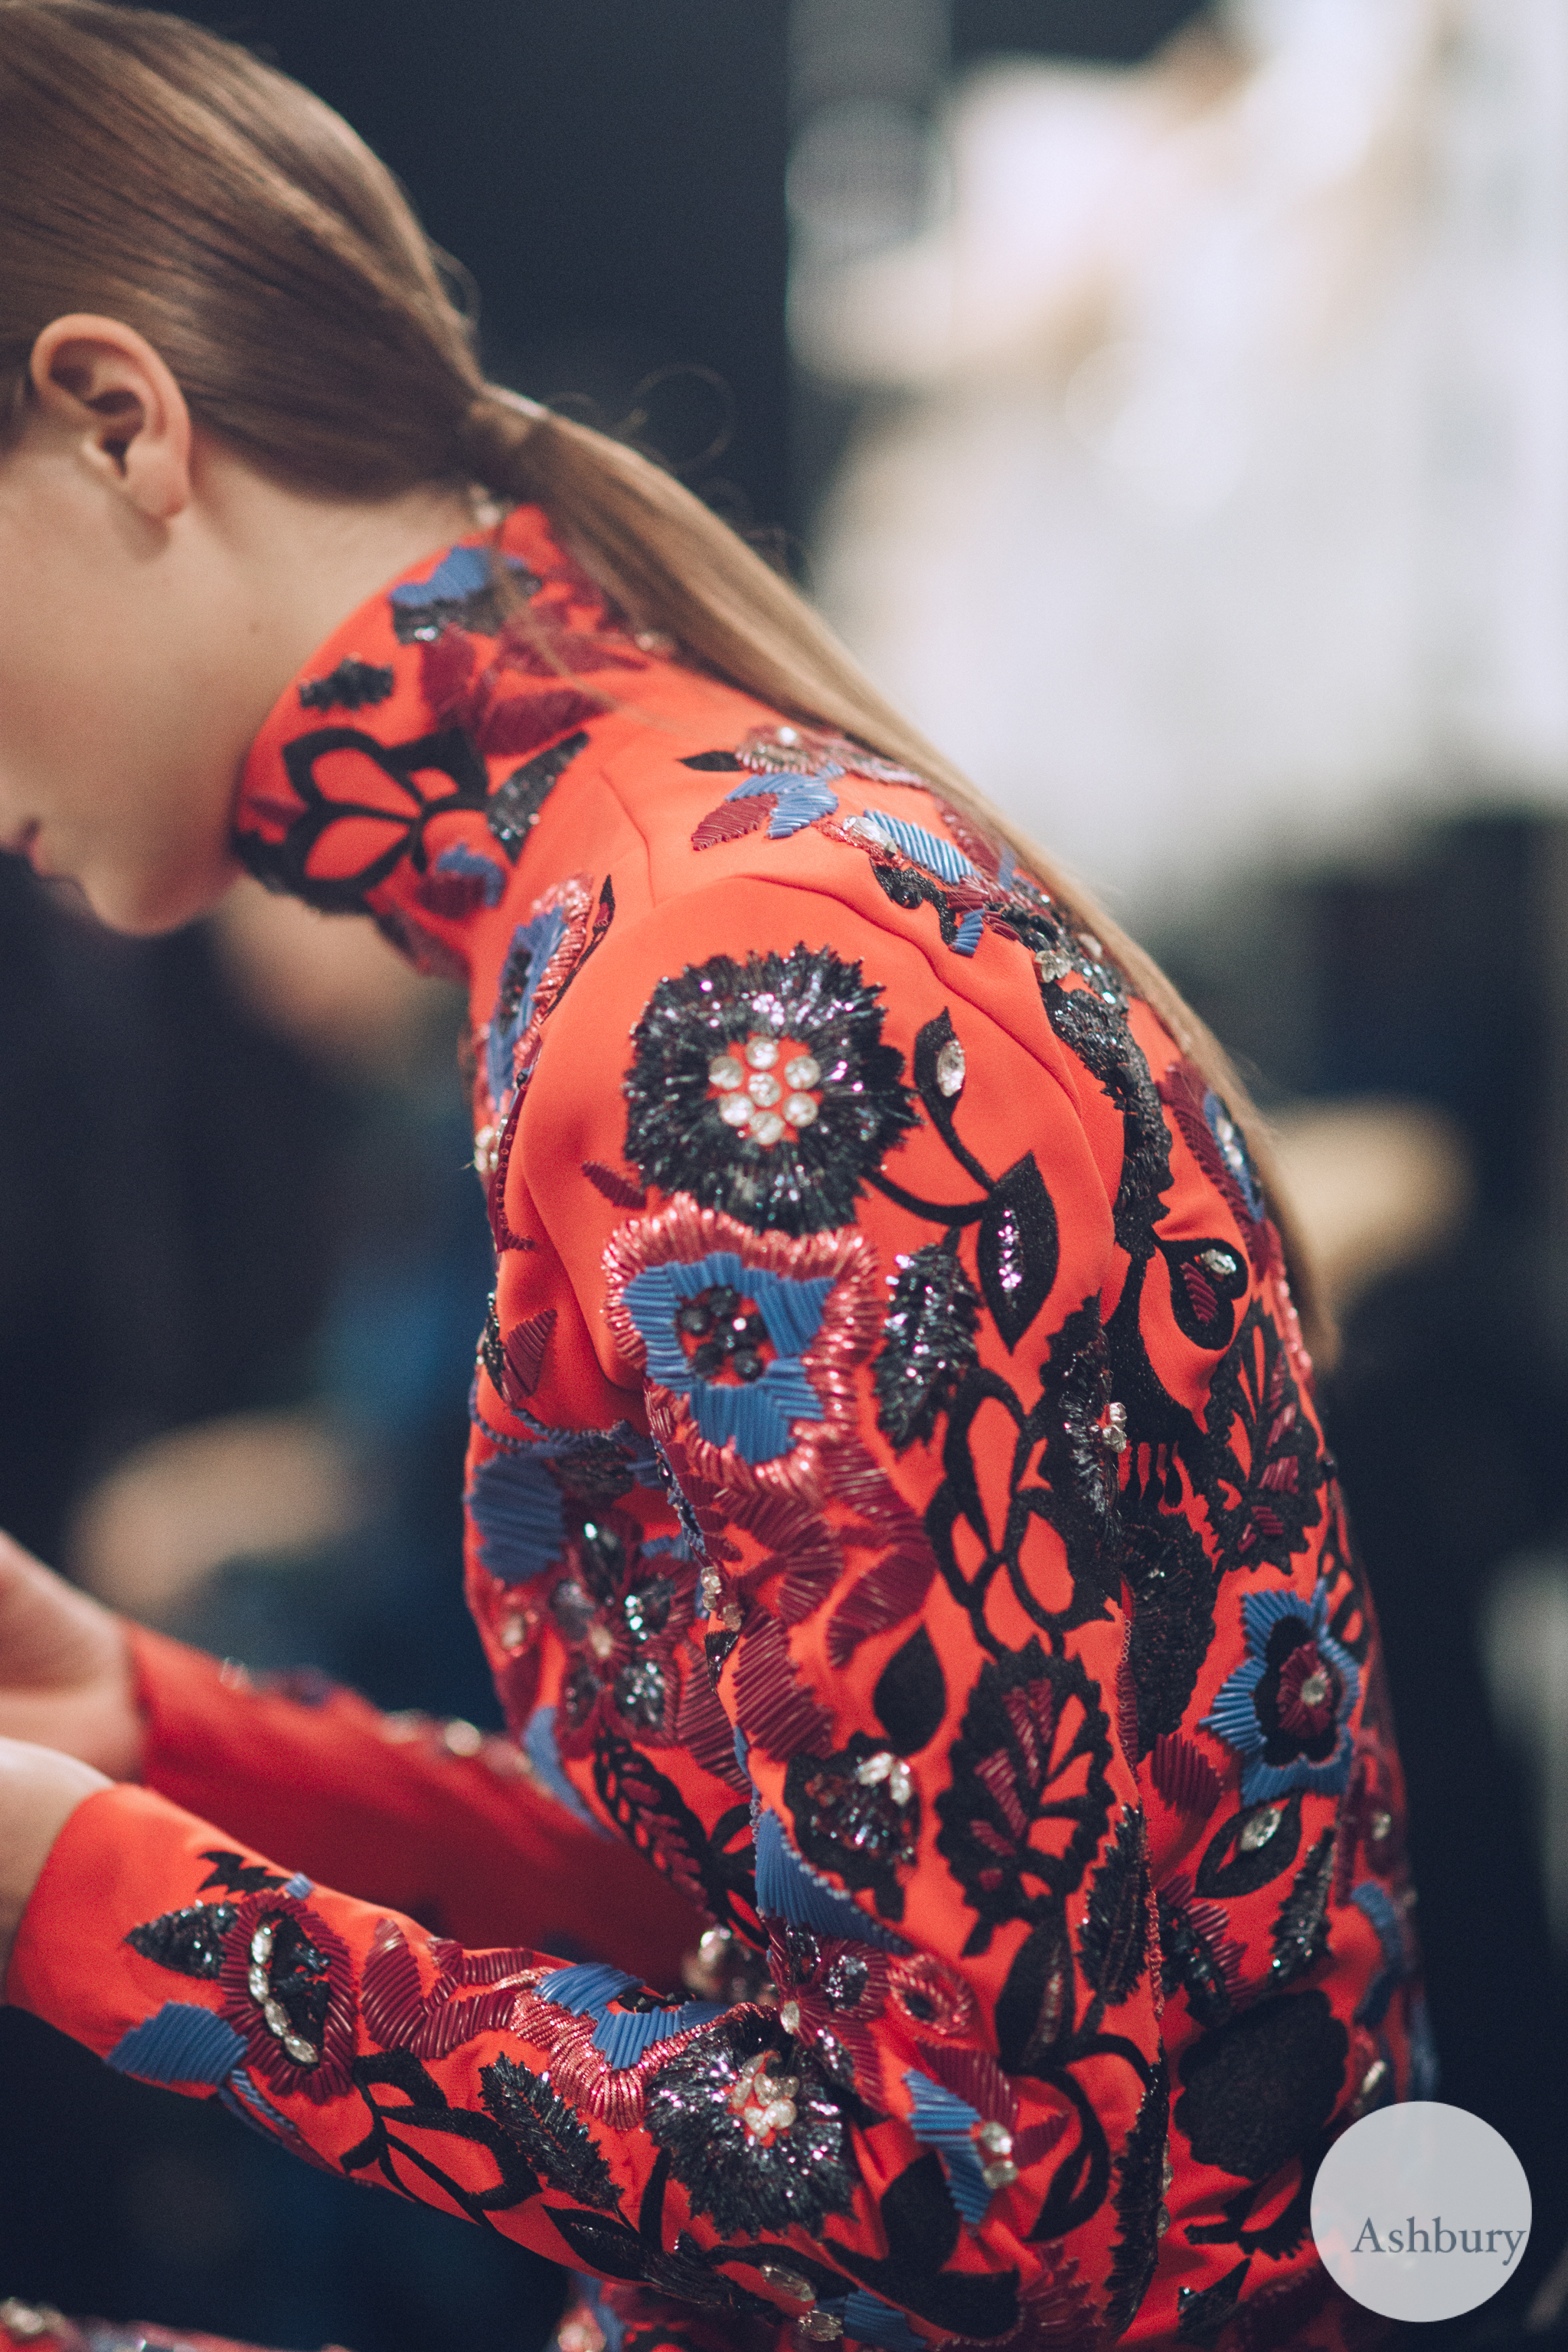 kenzo backstage fall/winter 2015 - ine neefs